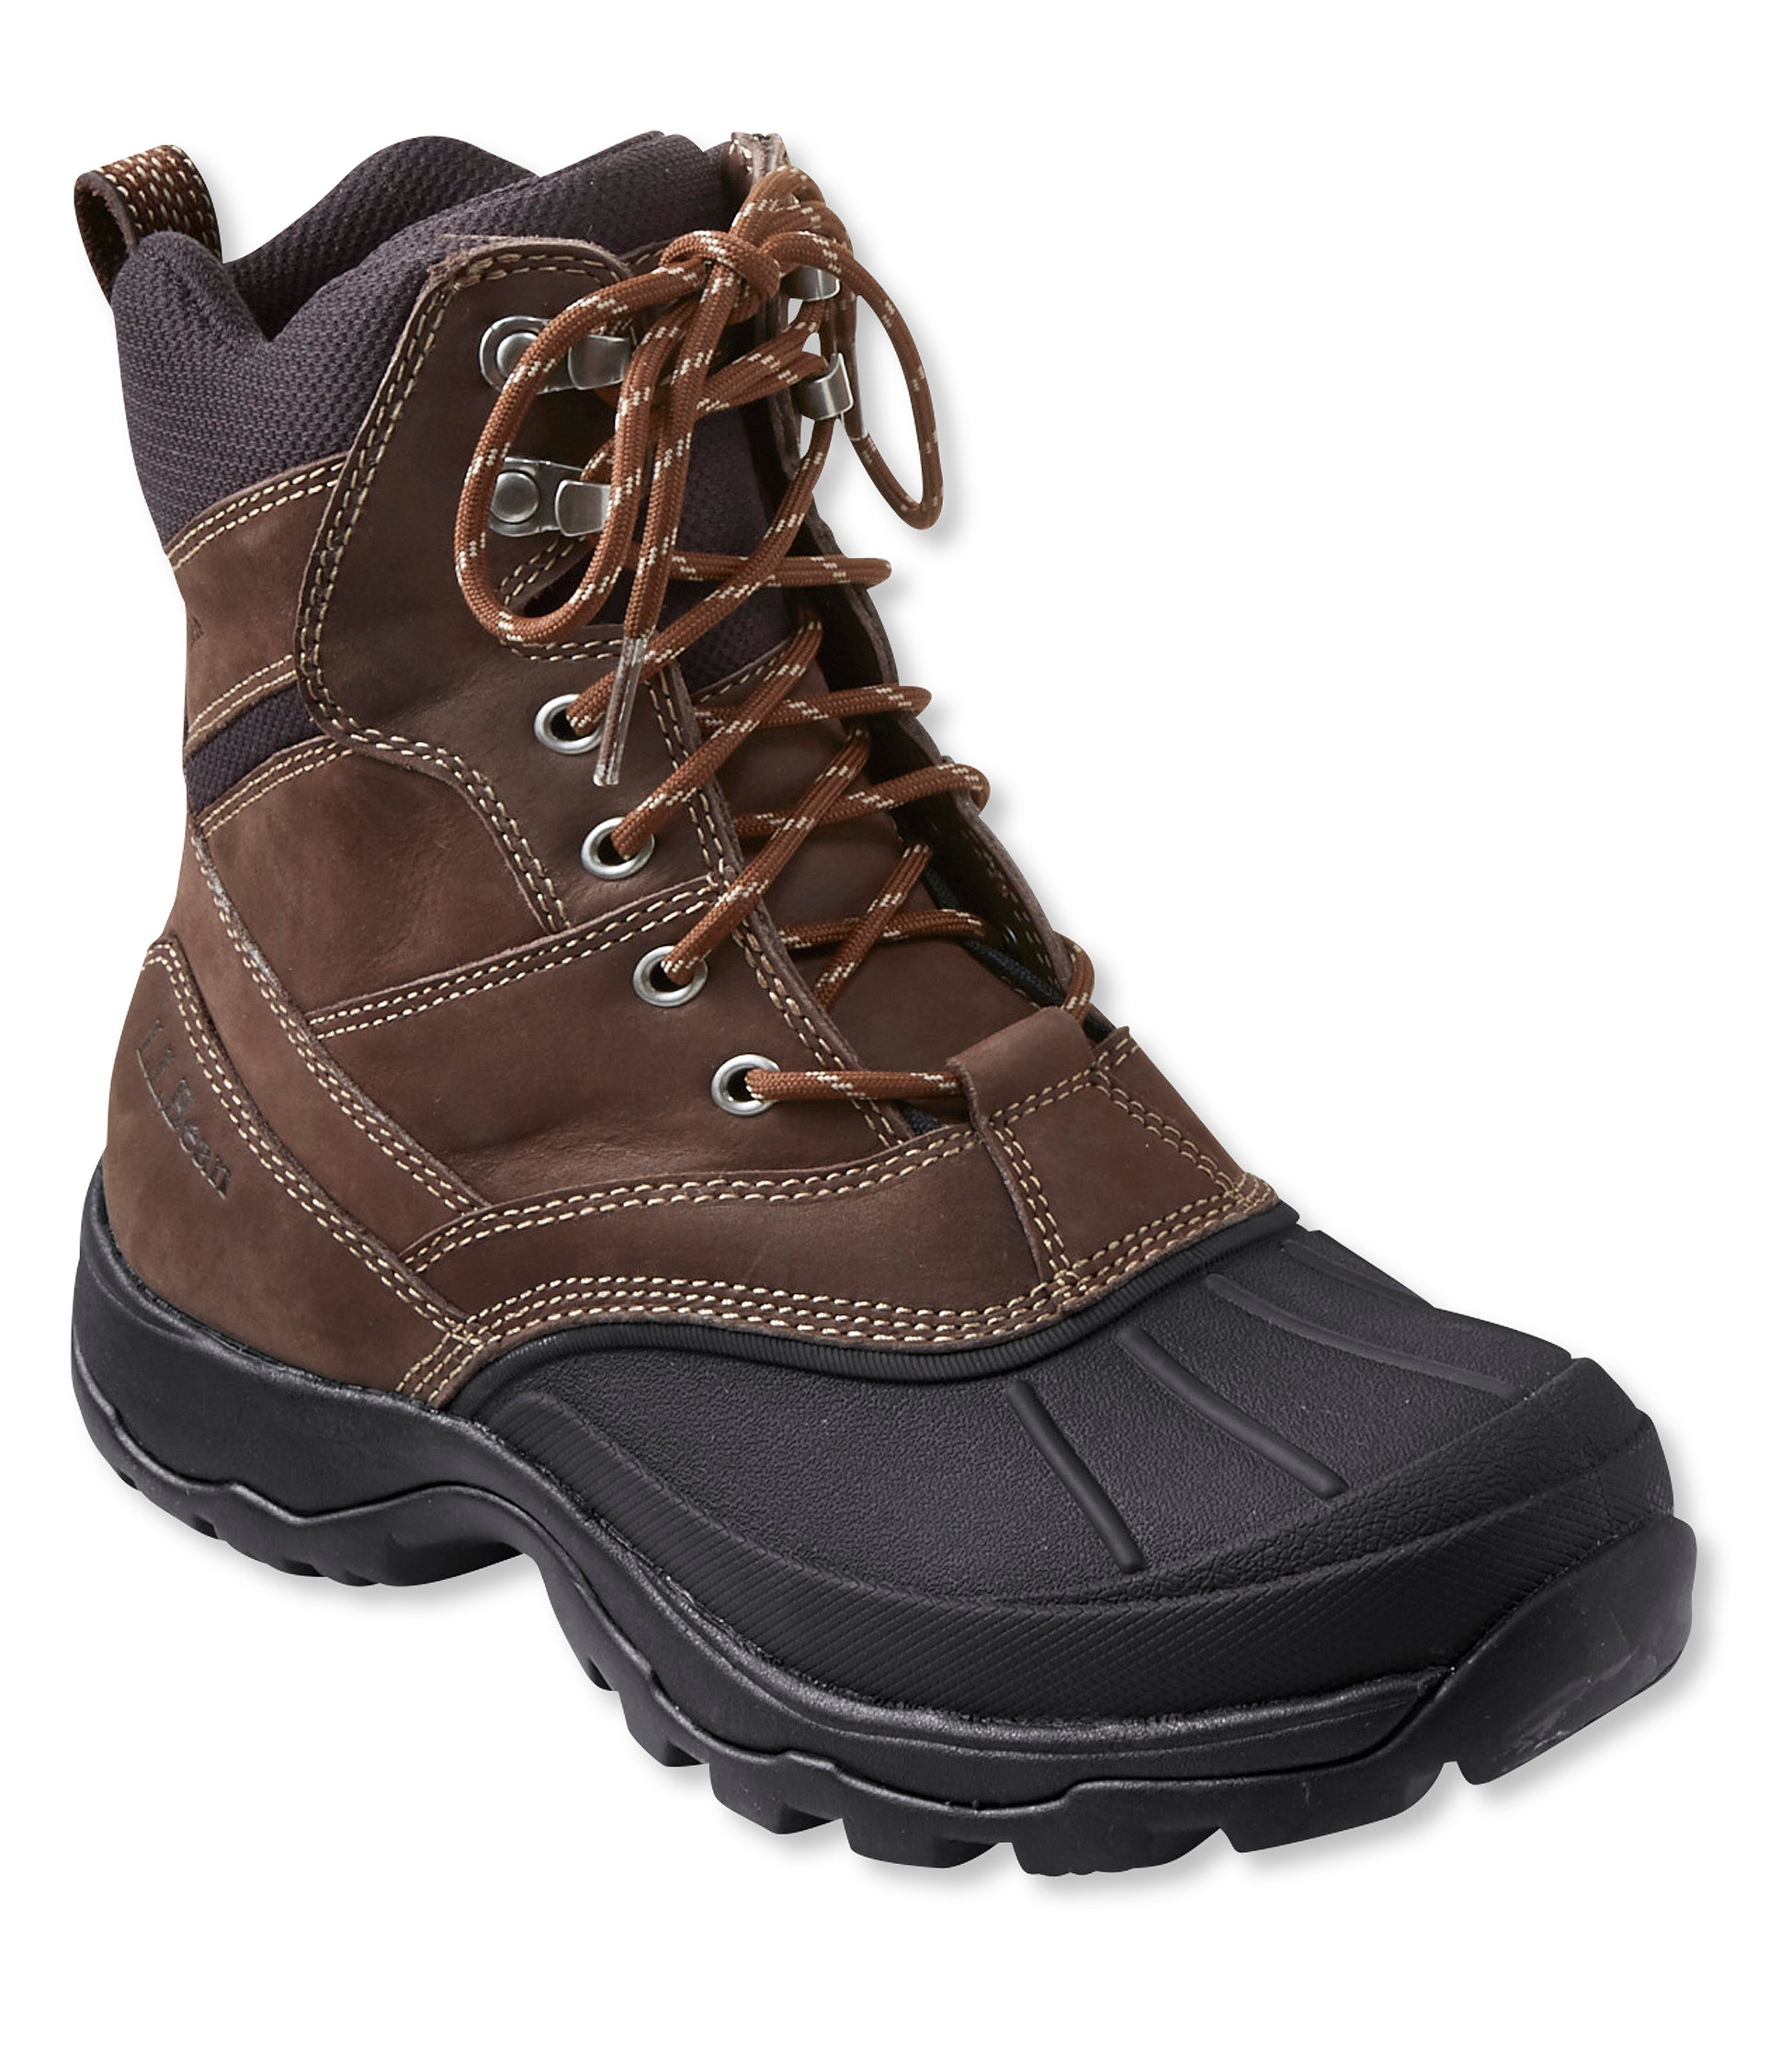 mens winter boots menu0027s storm chasers, lace-up boot DQLWWCU